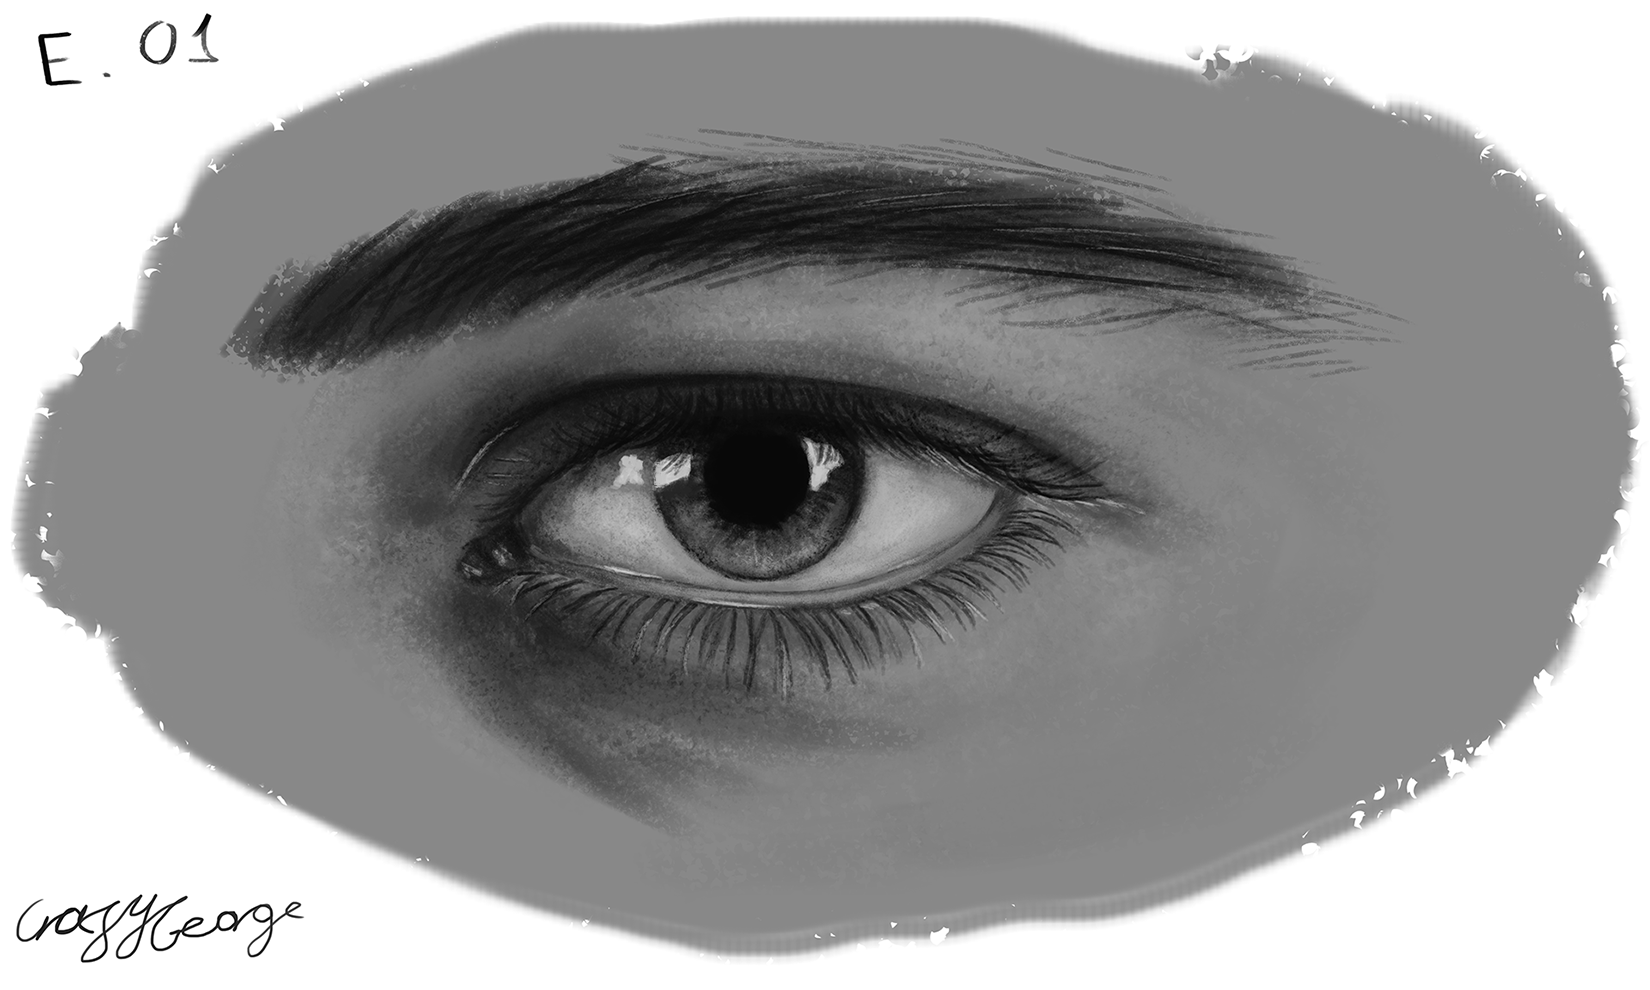 Exercise 01 - Drawing a Realistic Eye